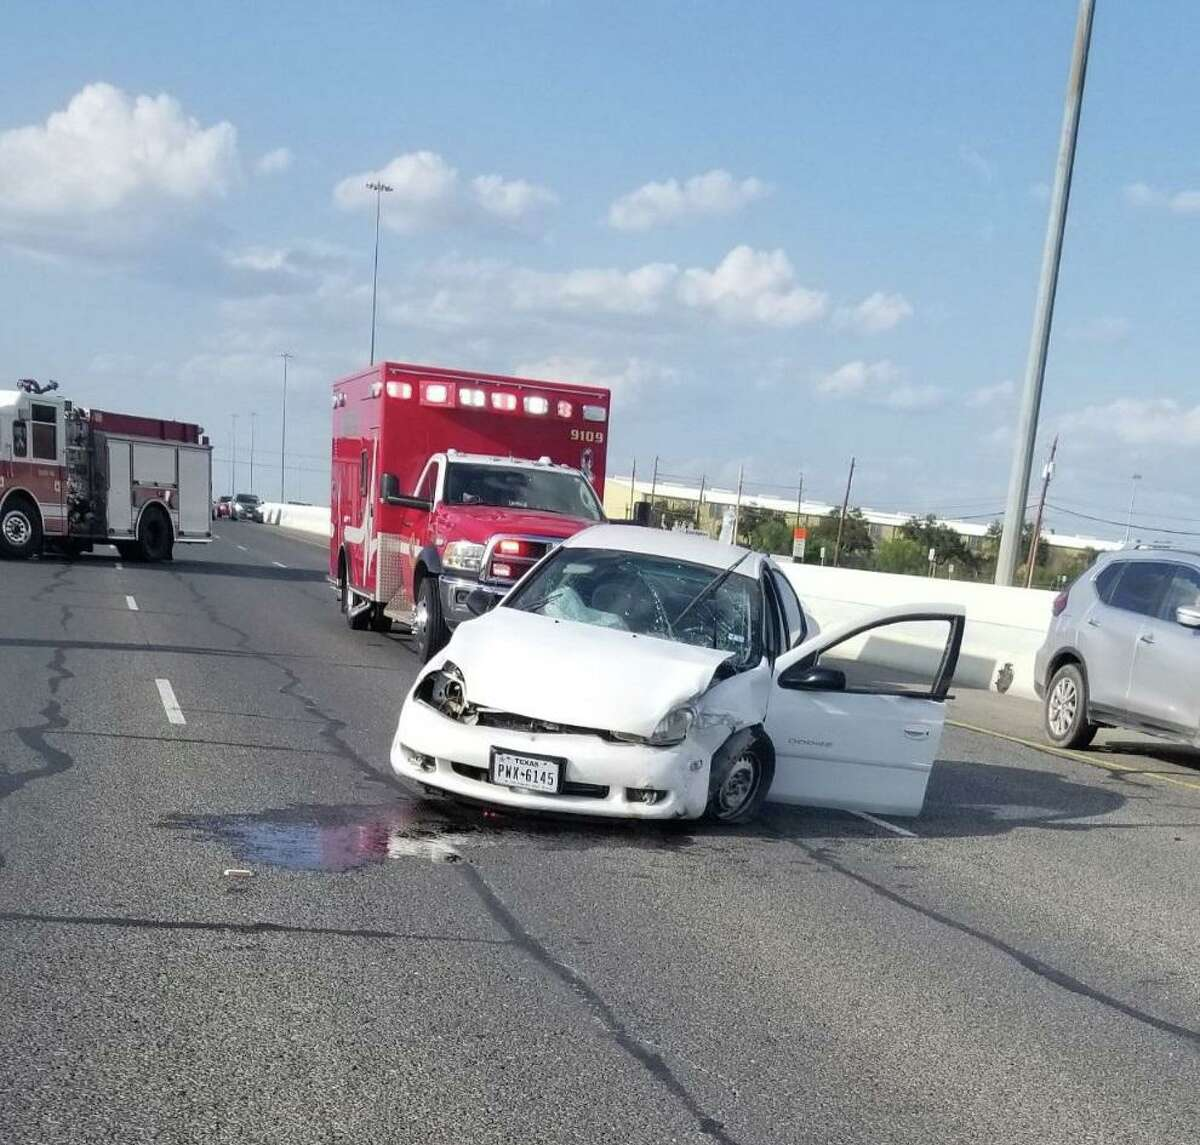 A single-vehicle crash was reported near Exit No. 4 of South Interstate 35. No injuries were reported.